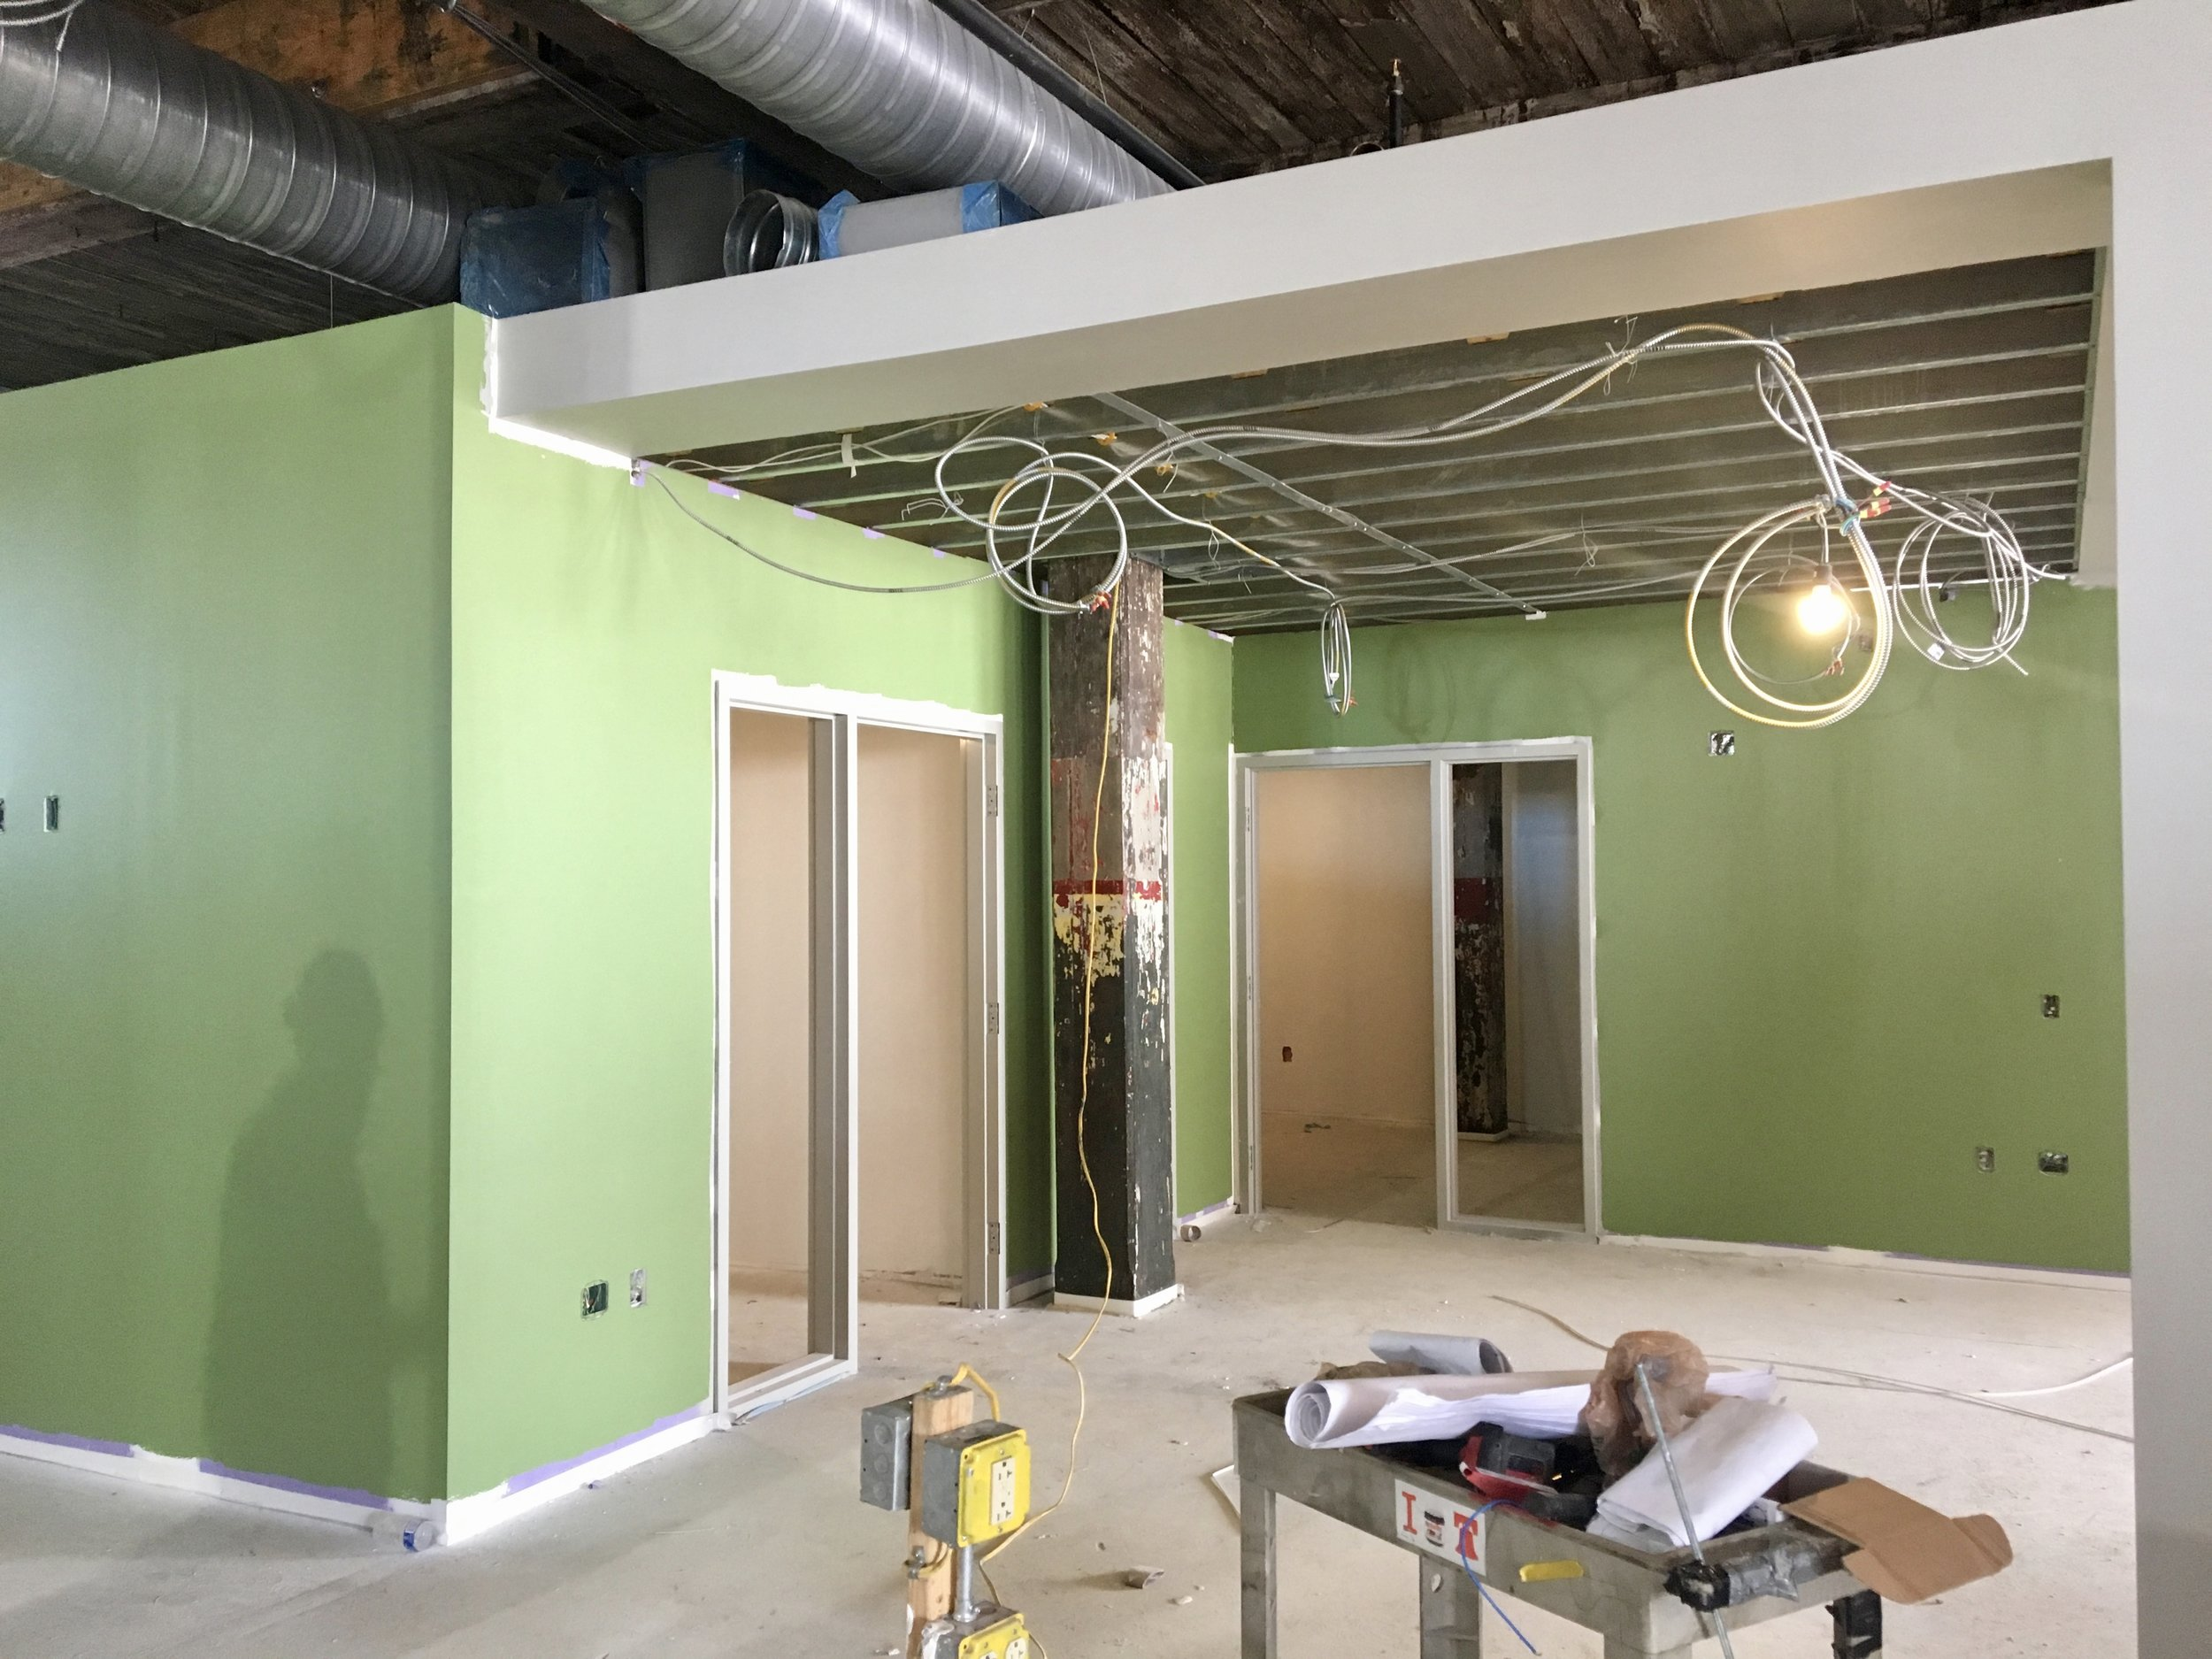 Restored Factory - The interior walls are almost complete! In this photo, the college counseling team's new space is looking welcoming and bright.